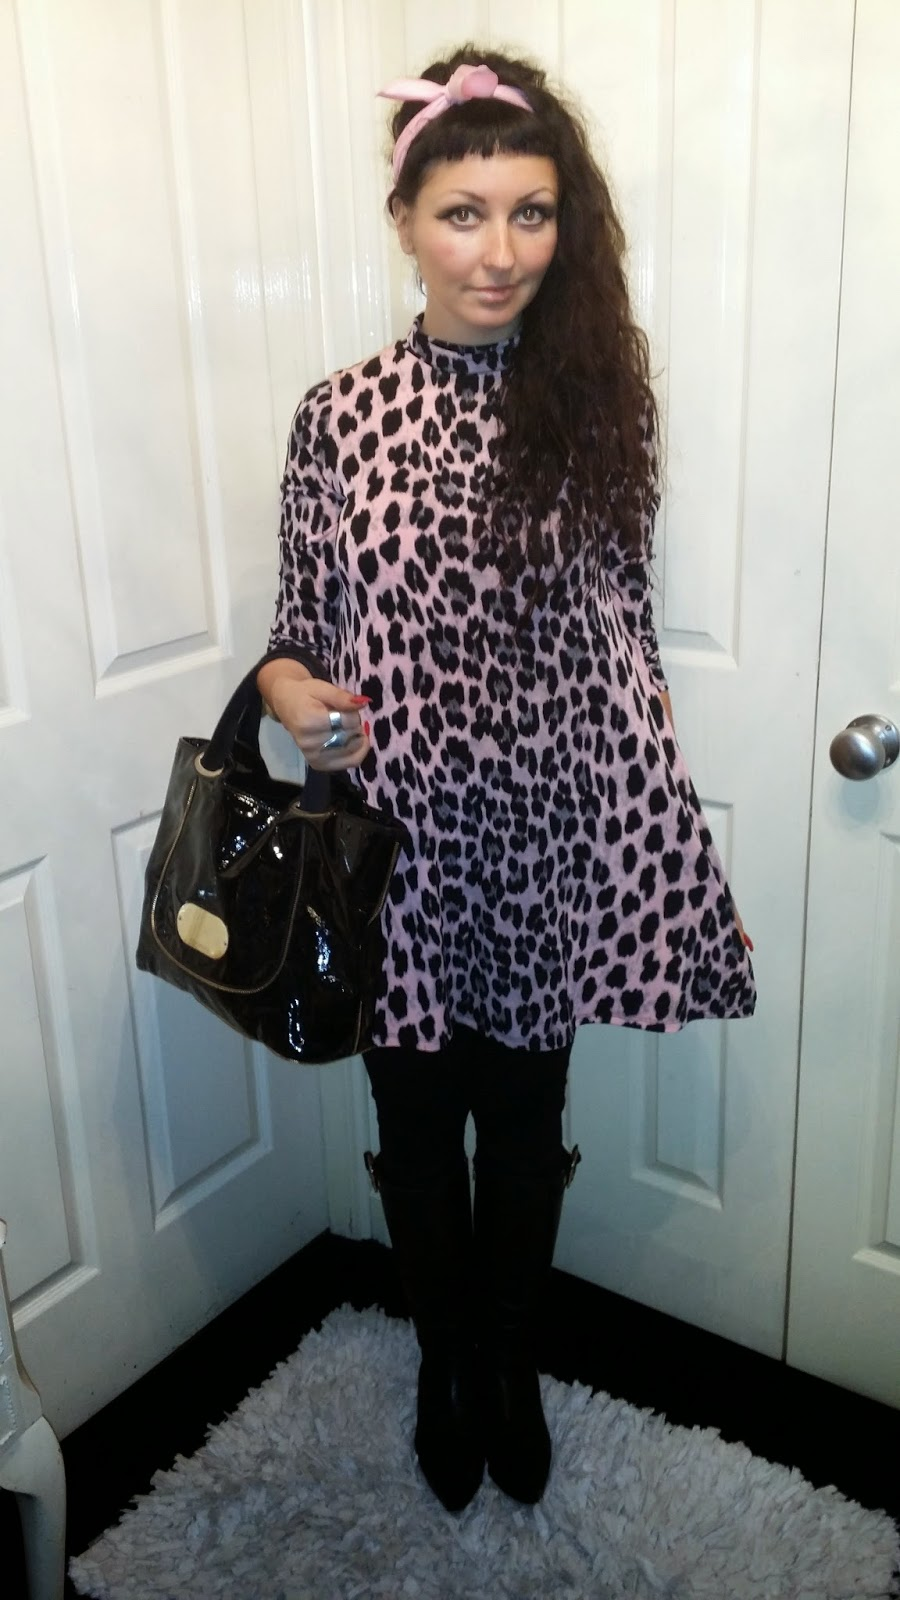 8b398b7eff I wore this for a day in the office which consists of my Giorgio Armani bag  which I wore with this animal print runic...Black leggings and Prada boot s.